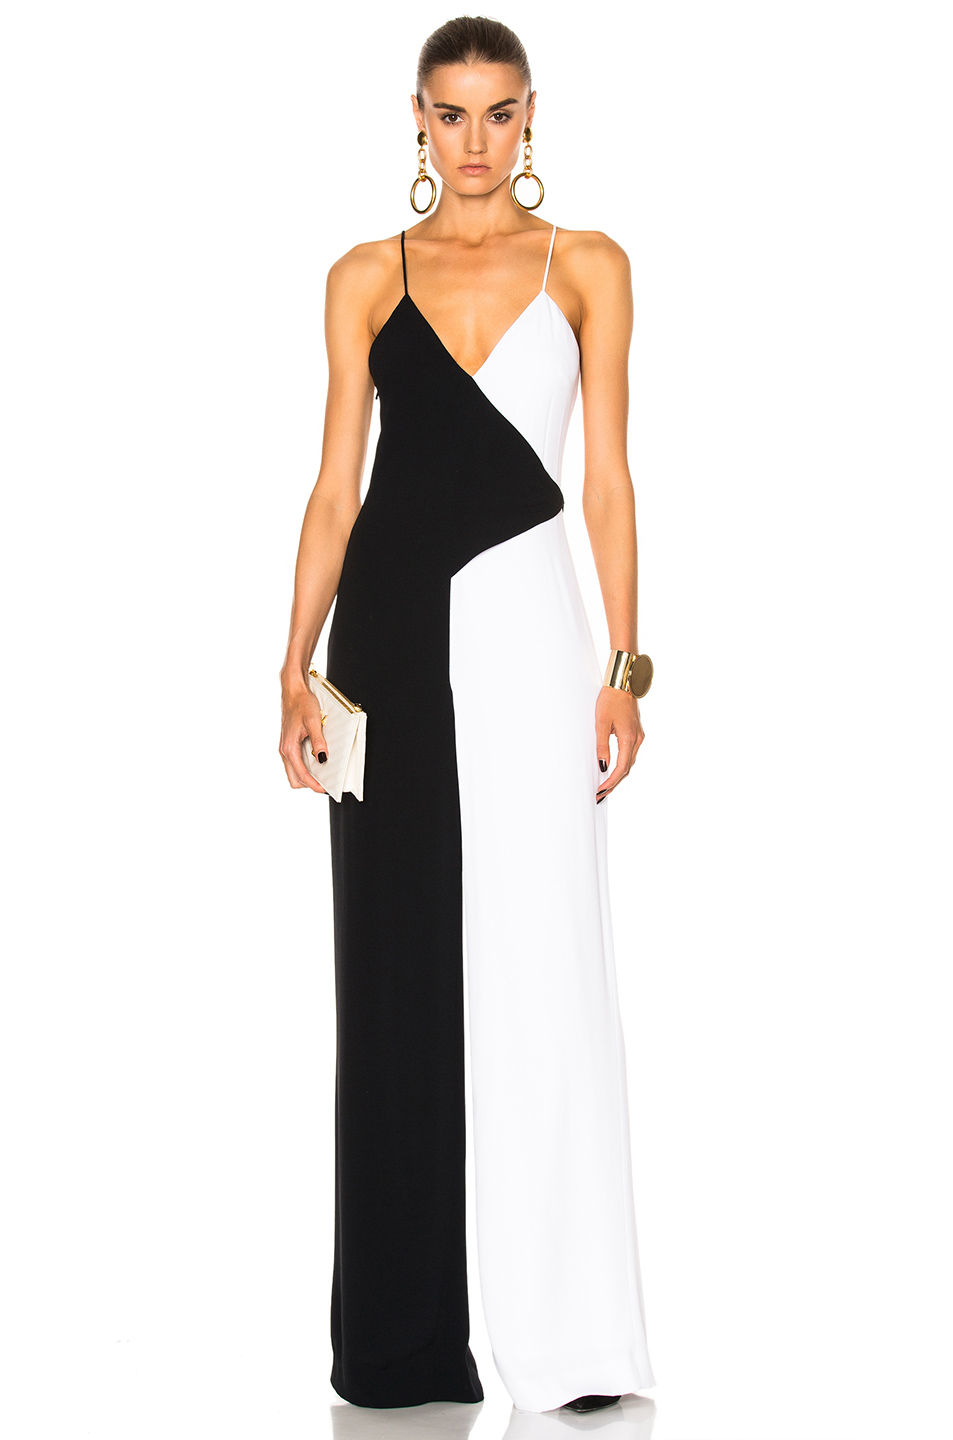 Cushnie et Ochs Two Tone Wide Leg Jumpsuit in Black,White